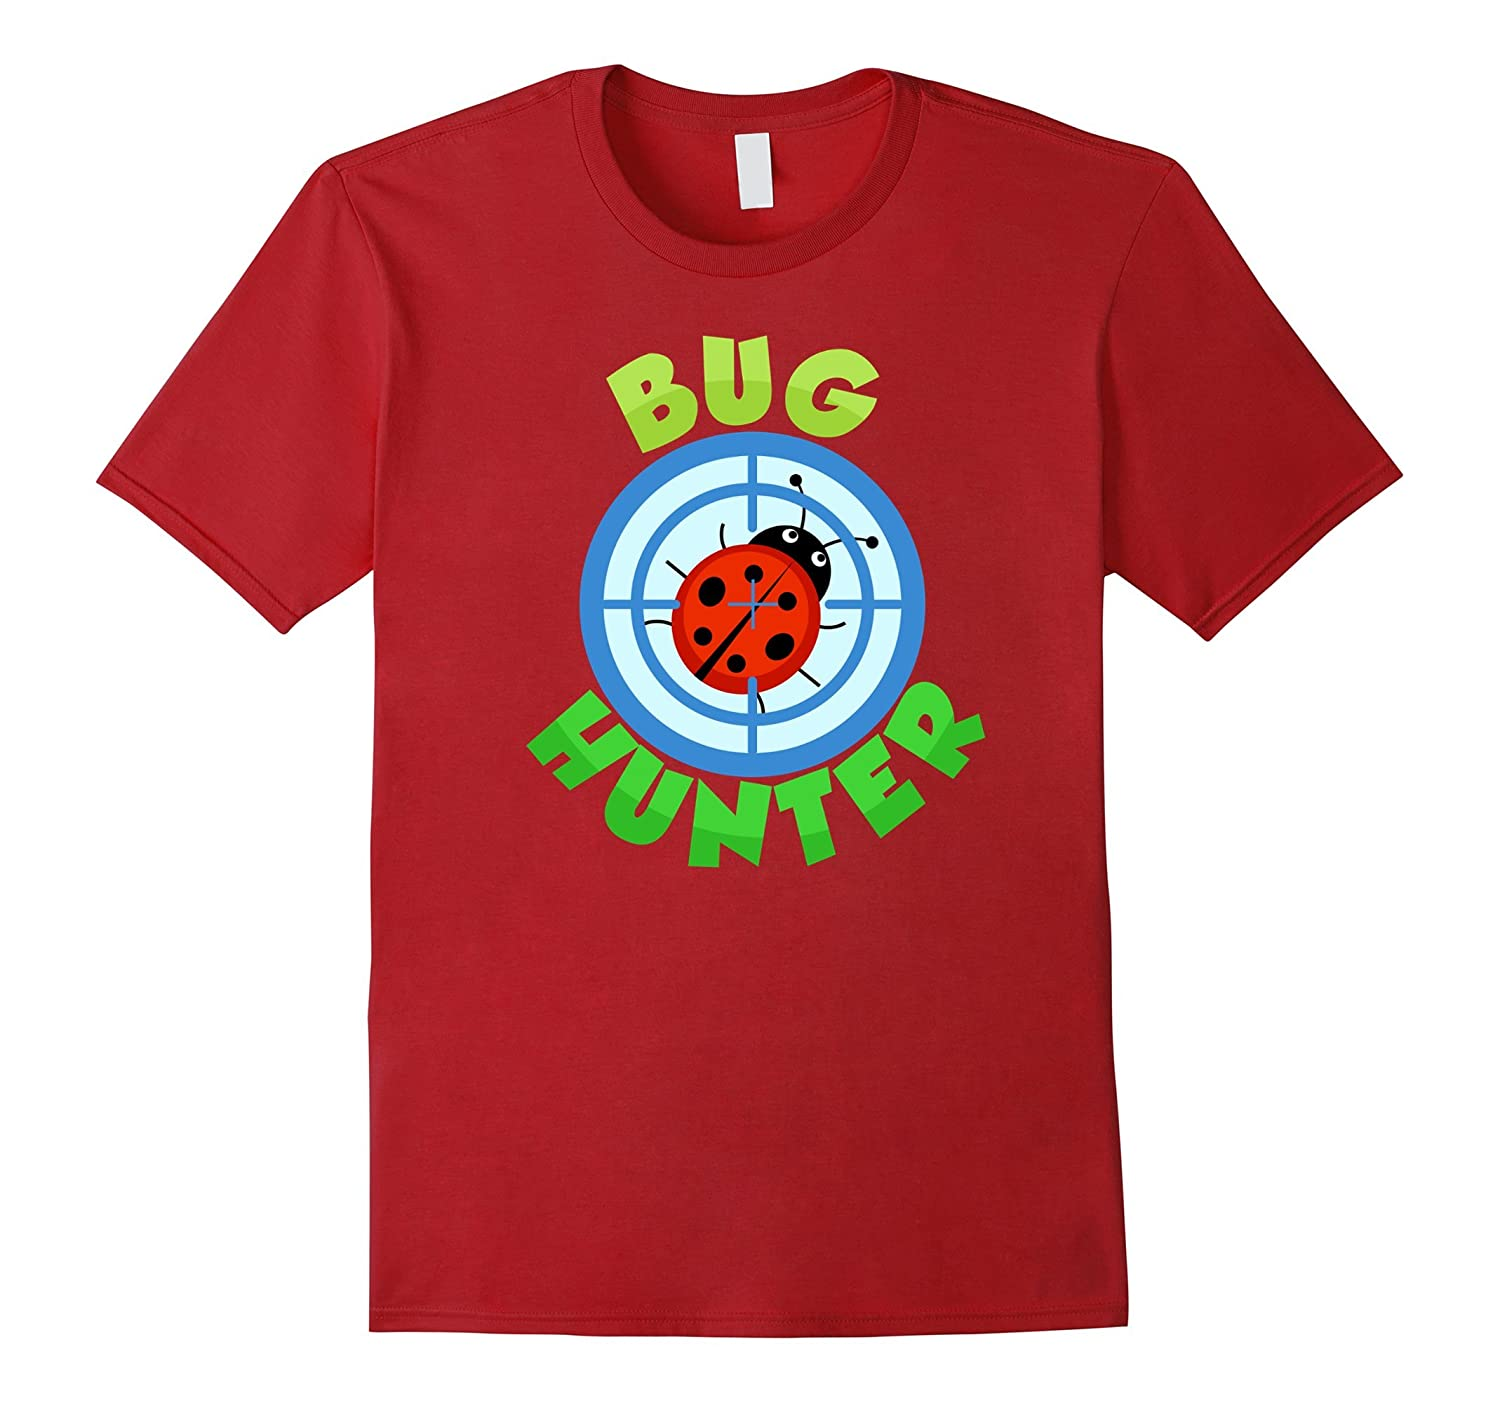 Cute Bug Hunter T-shirt, Ladybug, Bug Hunting by Zany Brainy-Art